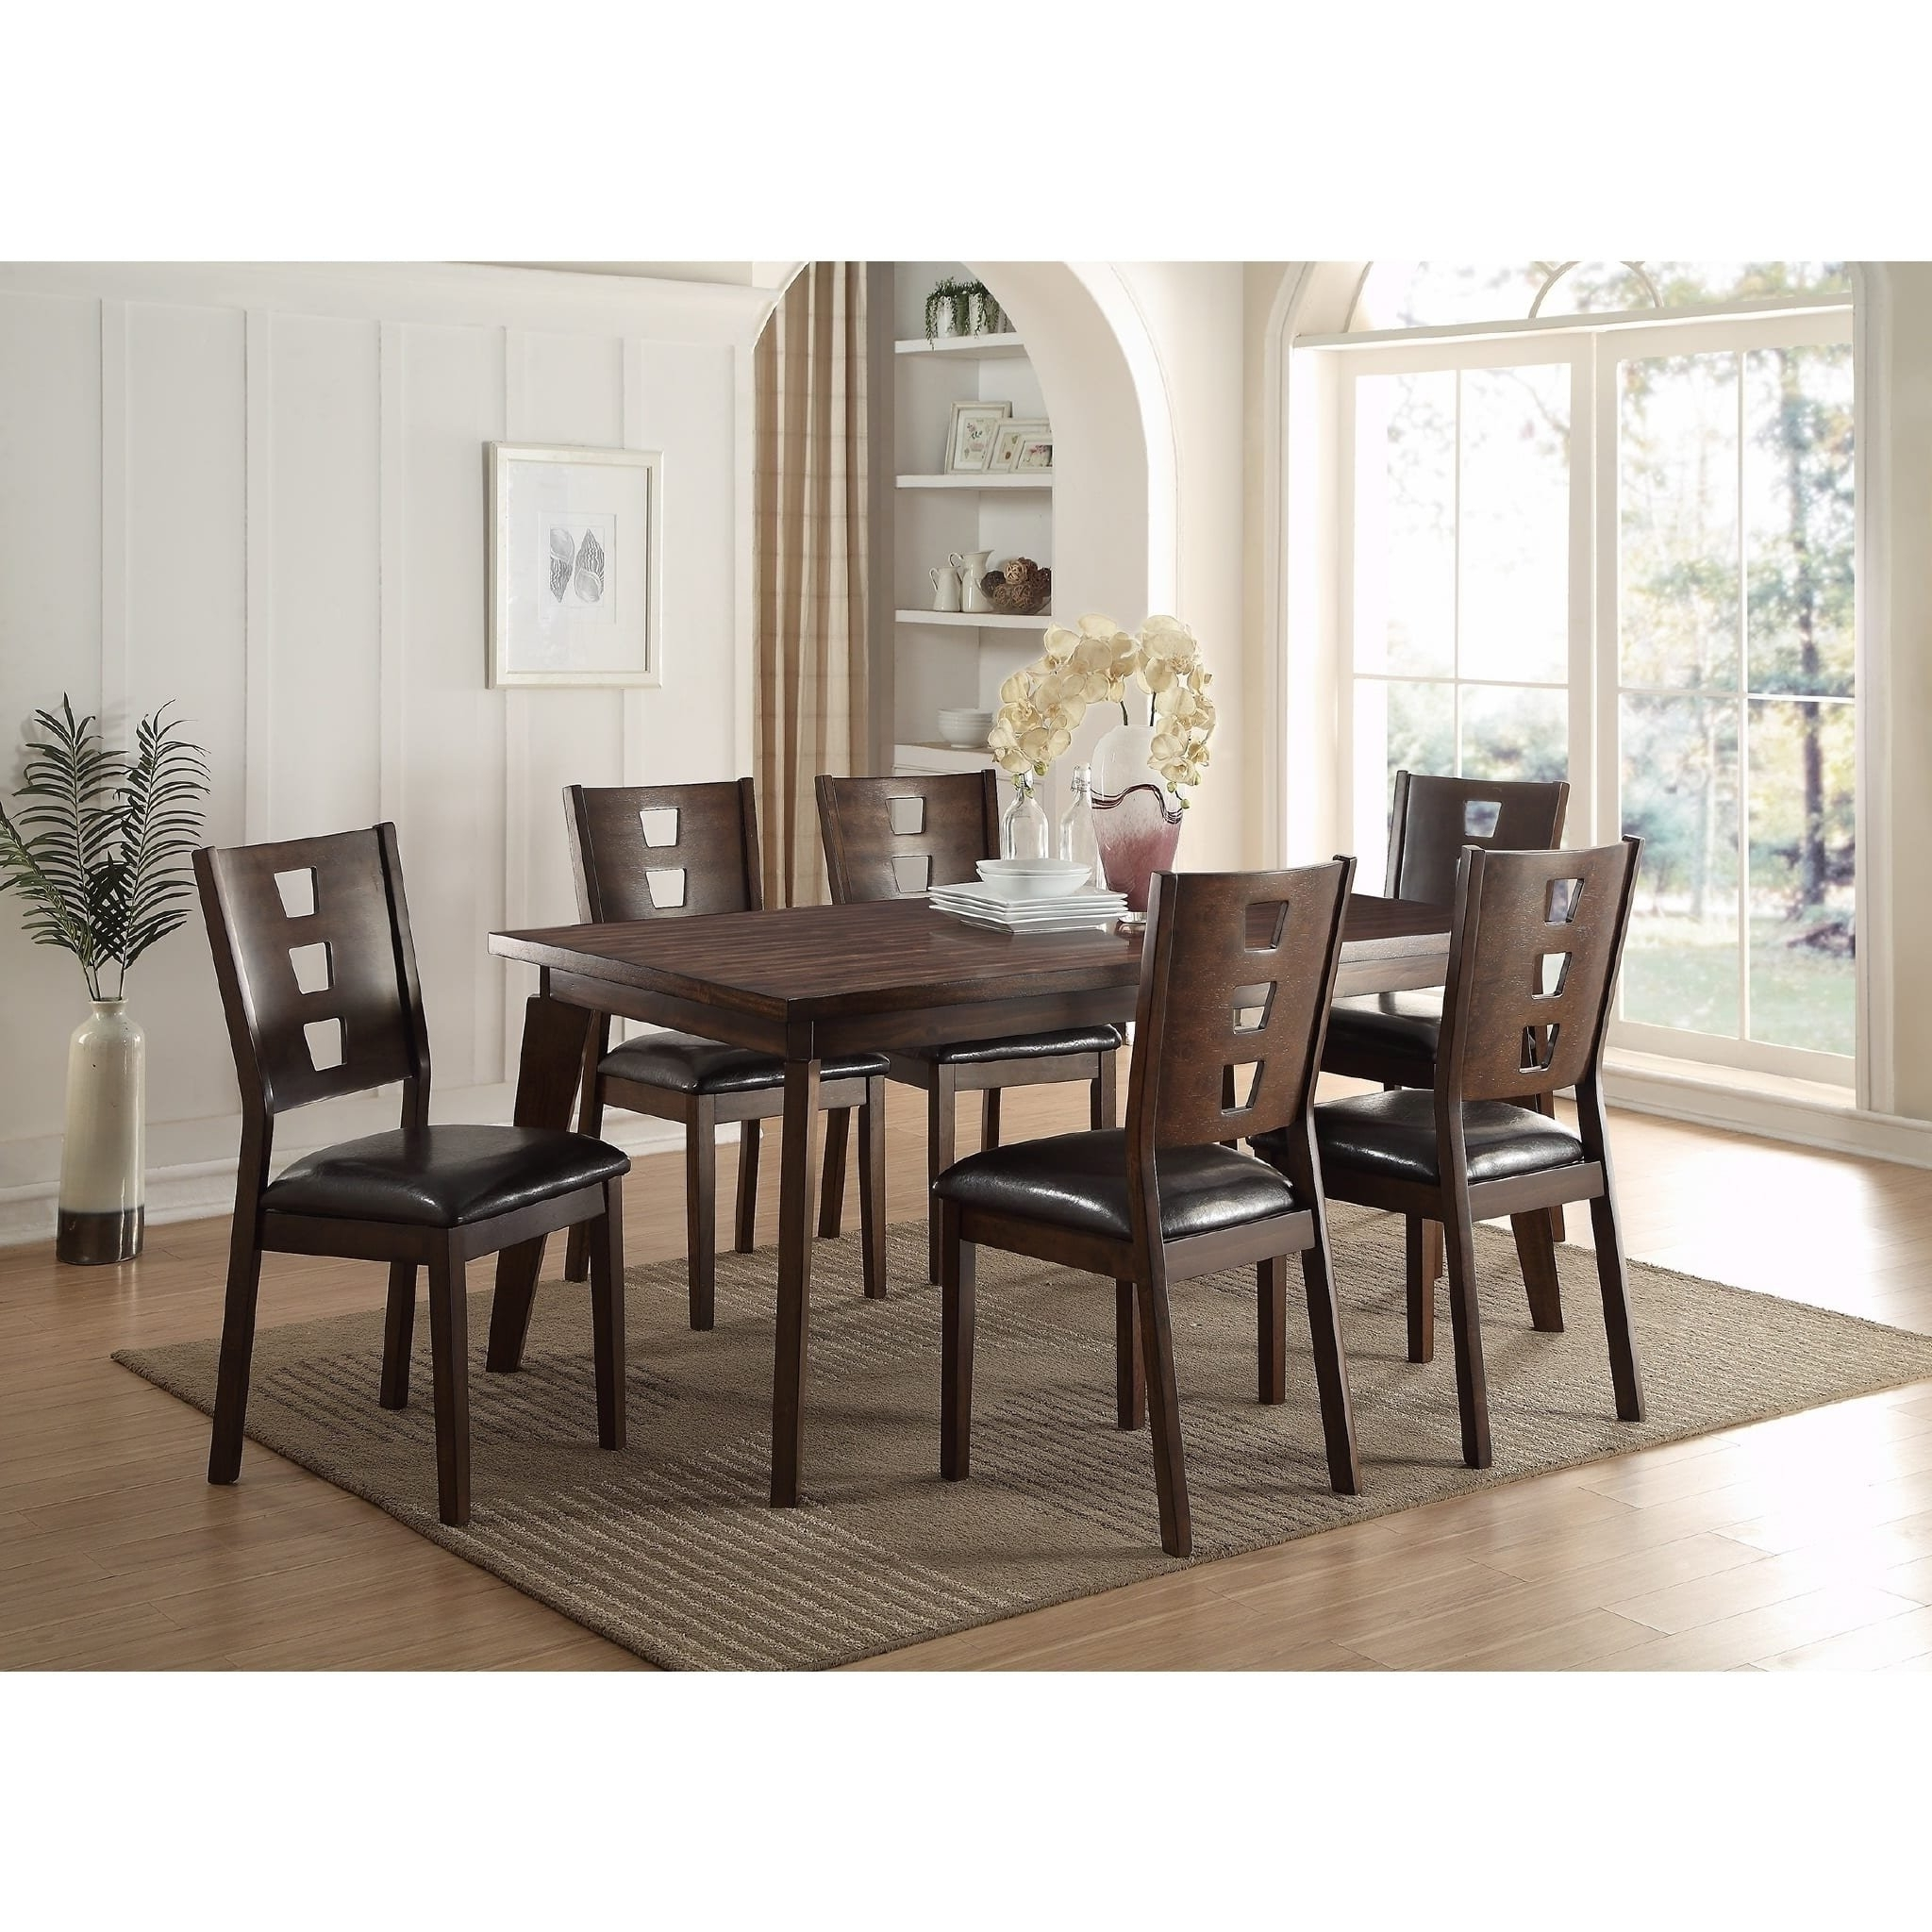 Popular Shop Joey 7 Piece Dining Set – Free Shipping Today – Overstock Intended For Caira 7 Piece Rectangular Dining Sets With Upholstered Side Chairs (View 2 of 25)